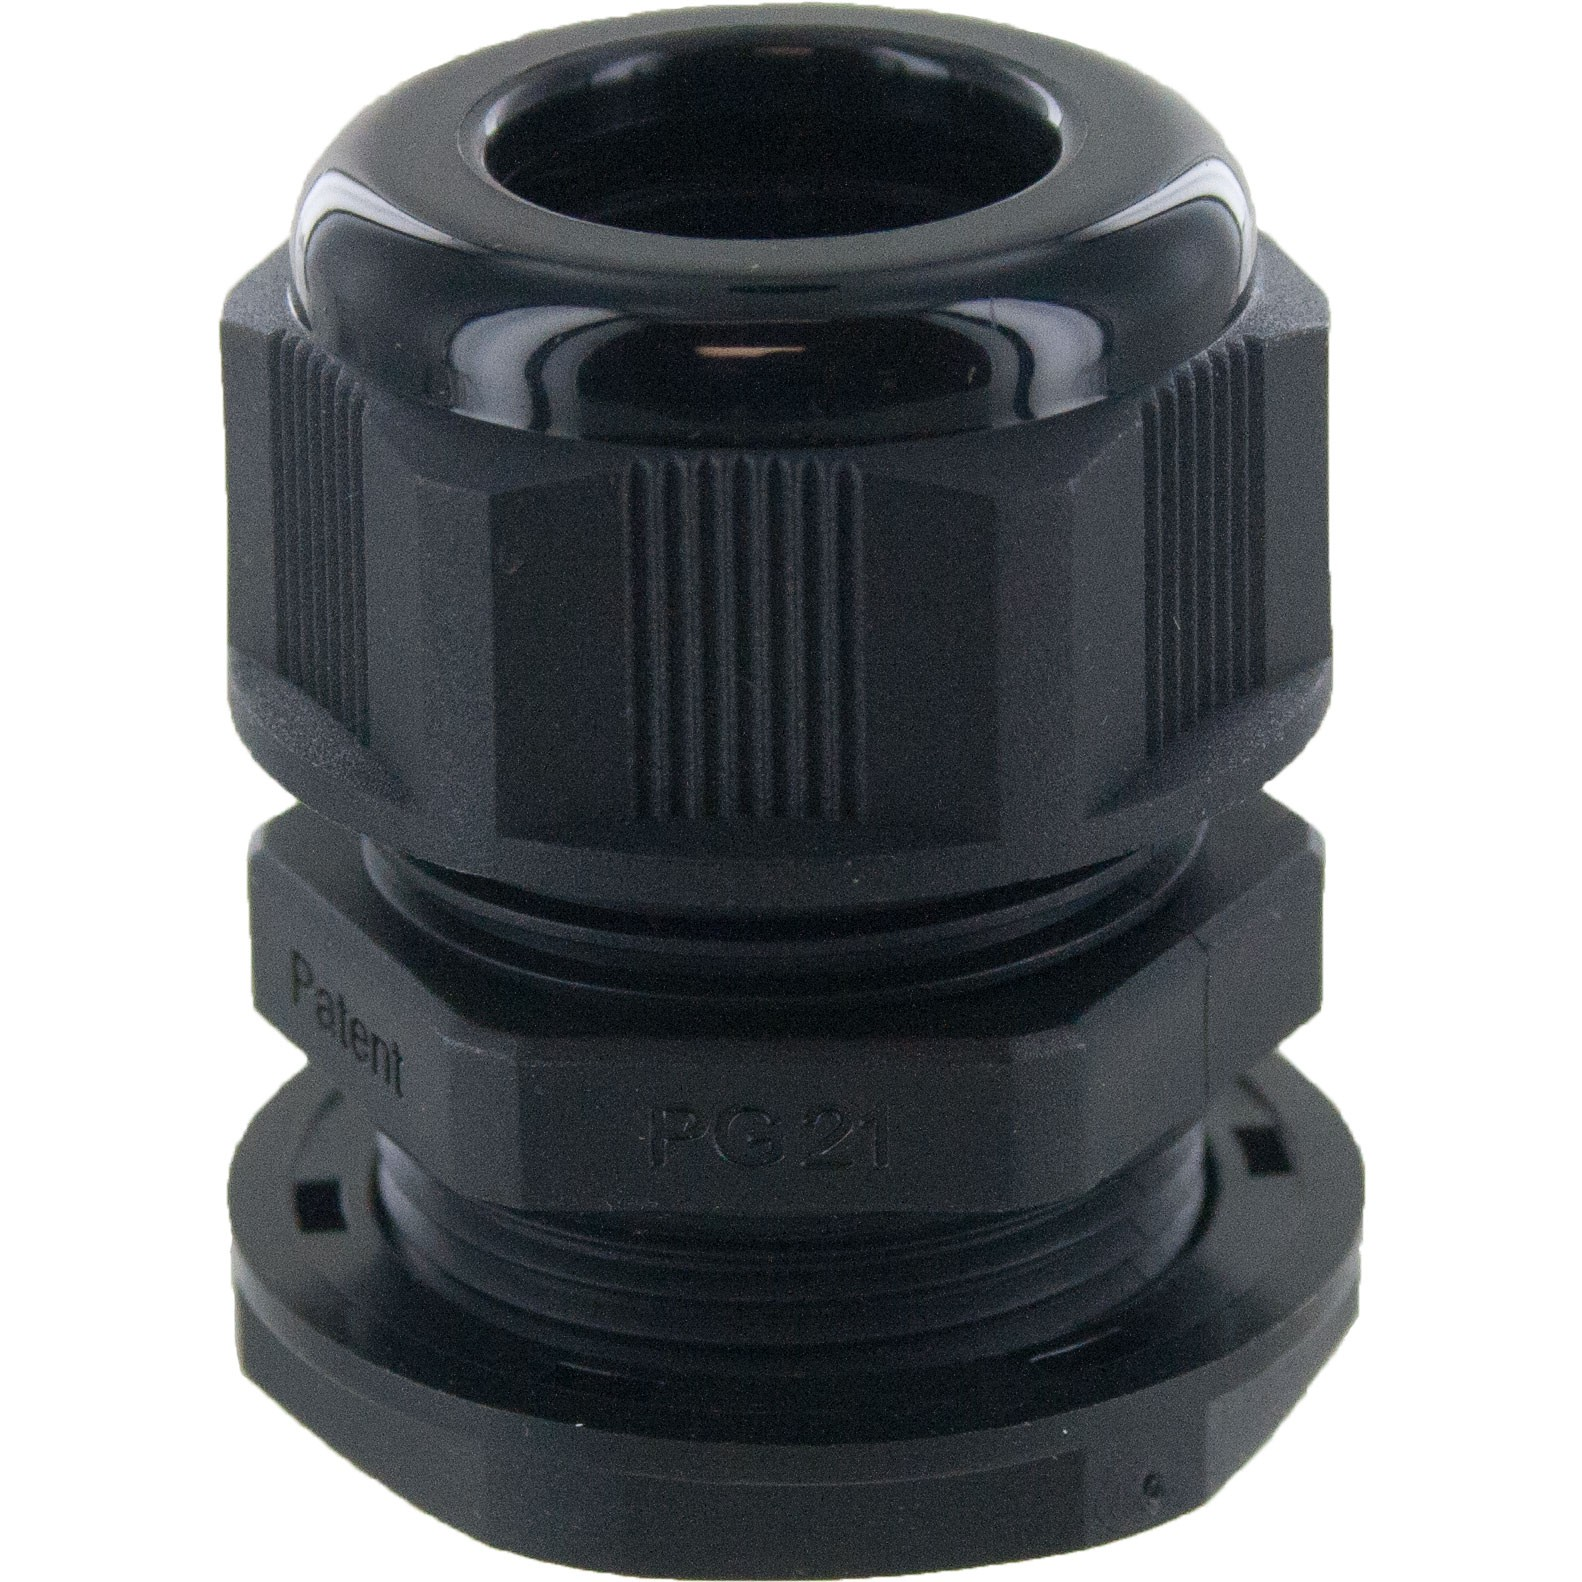 Nylon Dome Cap Cable Gland PG21 Black